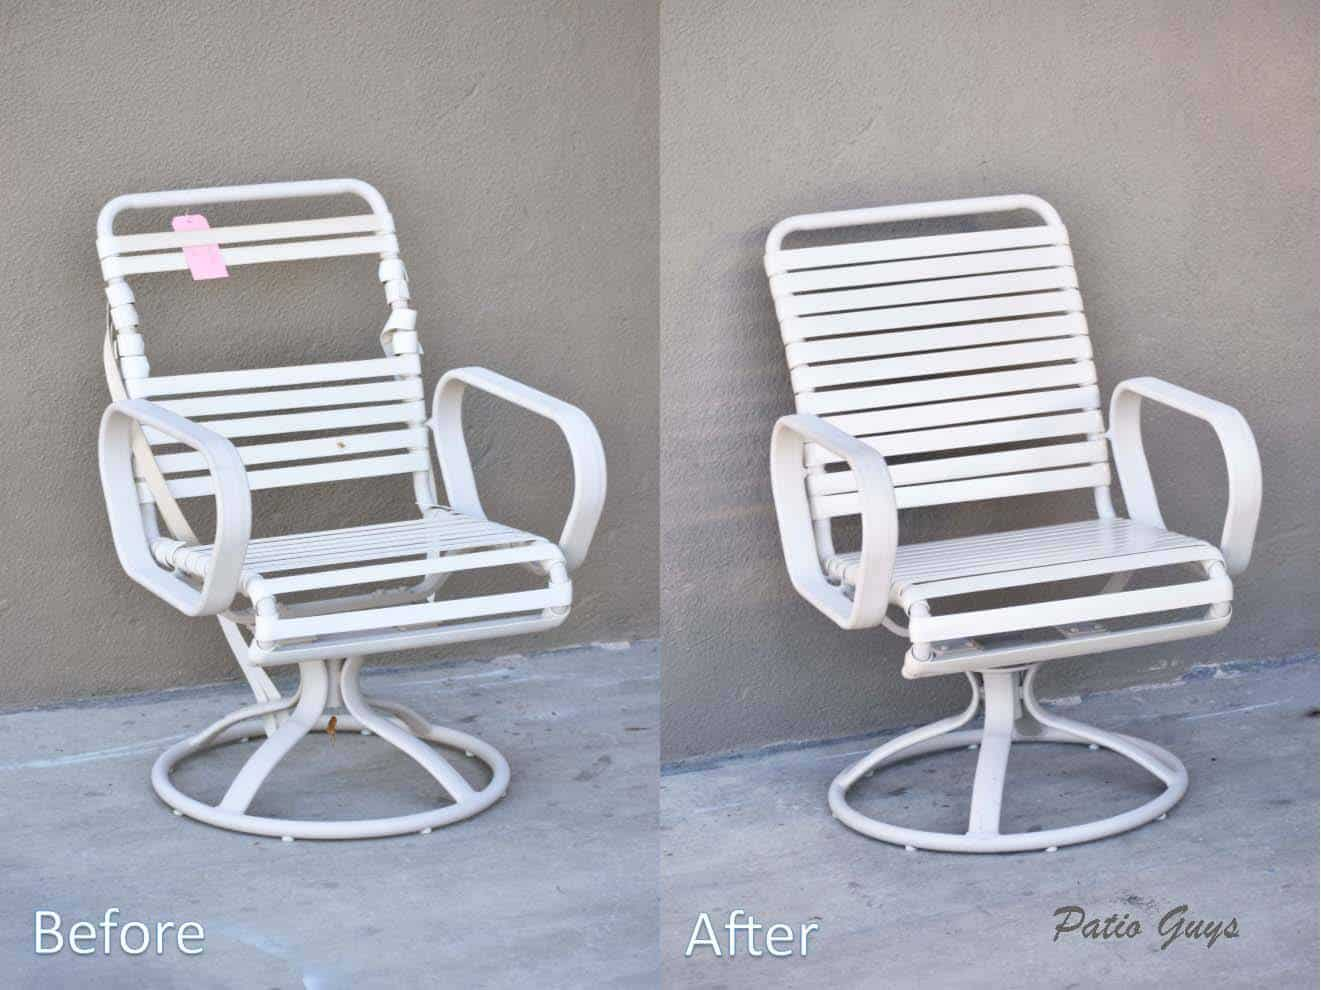 White outdor strap swivel chair before and after